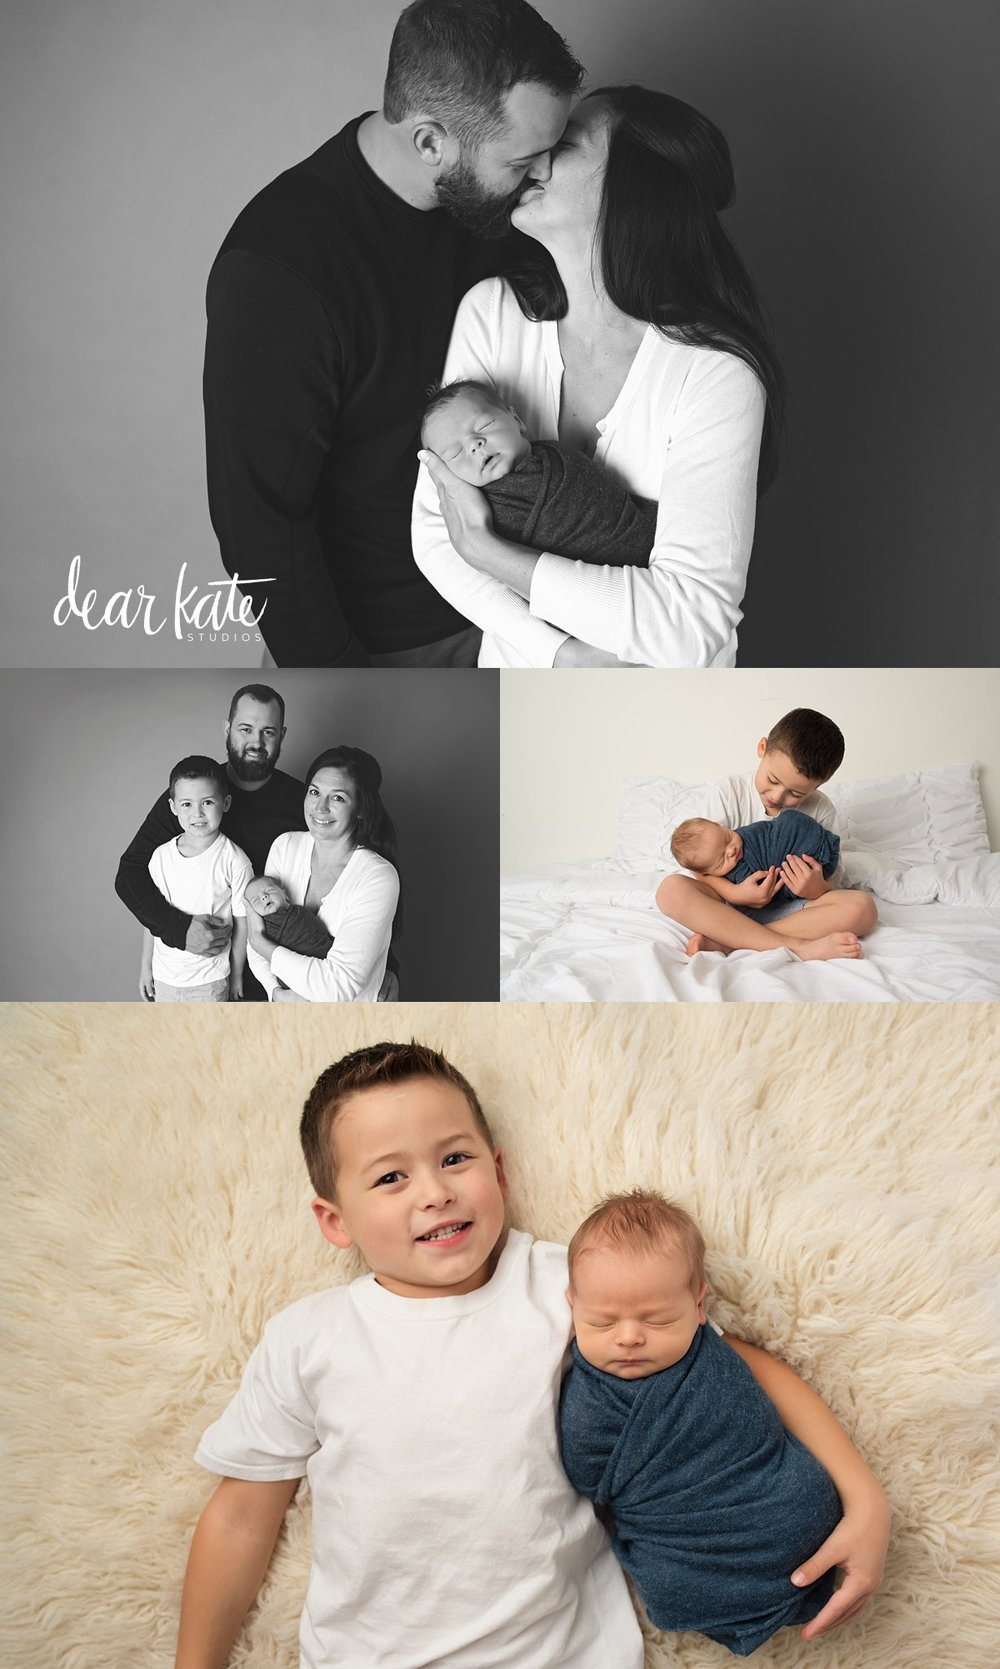 loveland newborn photography studio family and sibling pictures